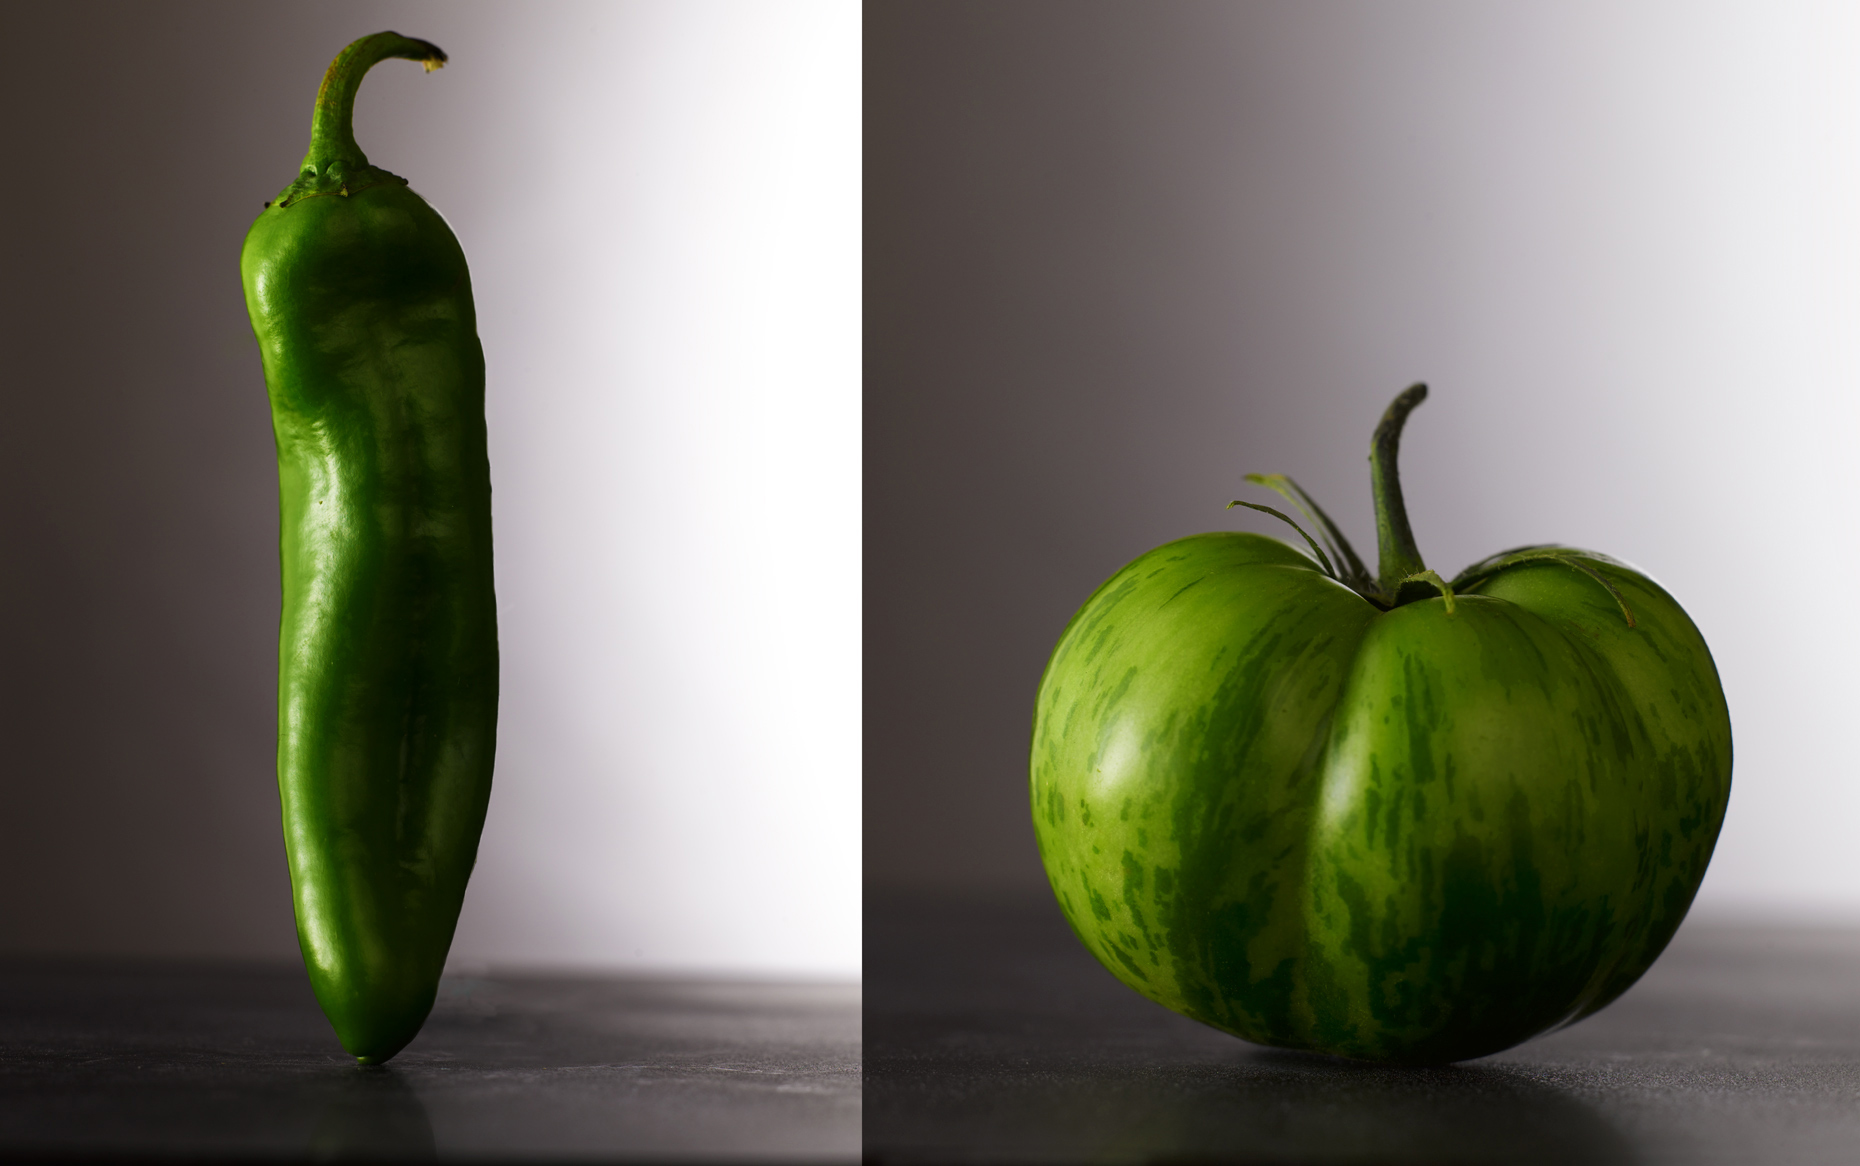 green_peper_tomatillo